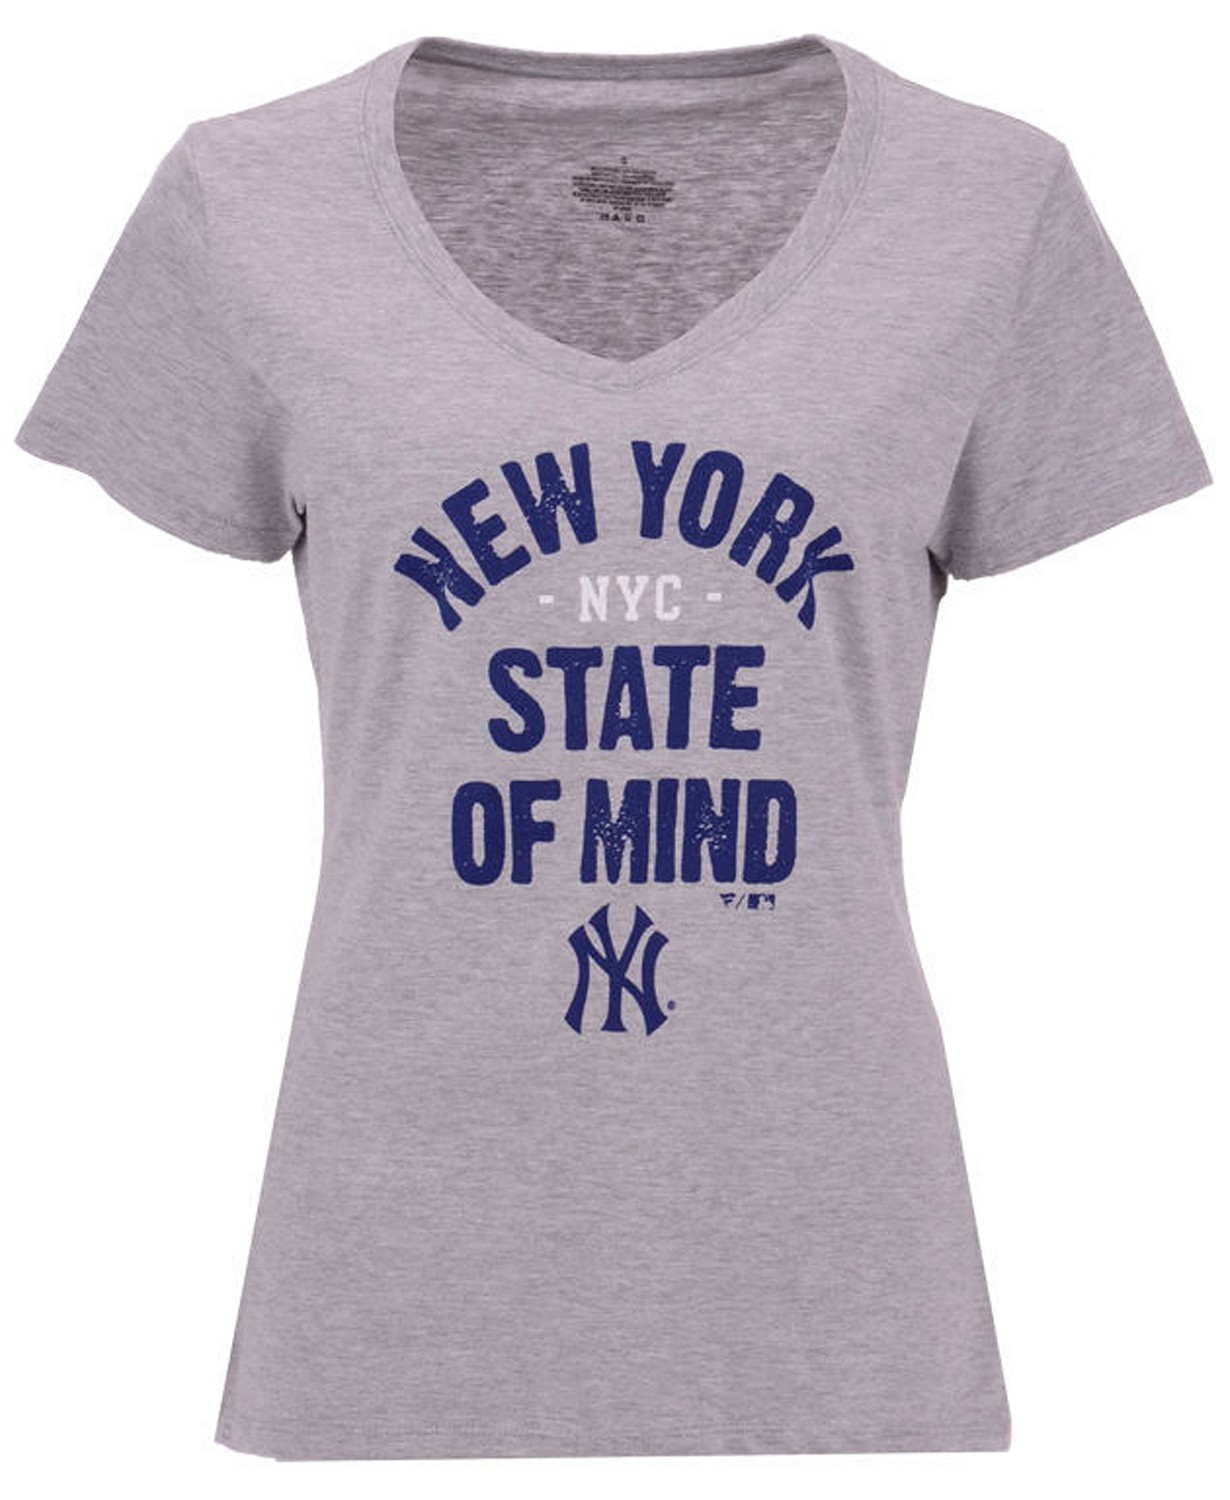 New York Yankees Hometown T-Shirt-Women s-Majestic - NY Sports Shop 6ce2fdd4899